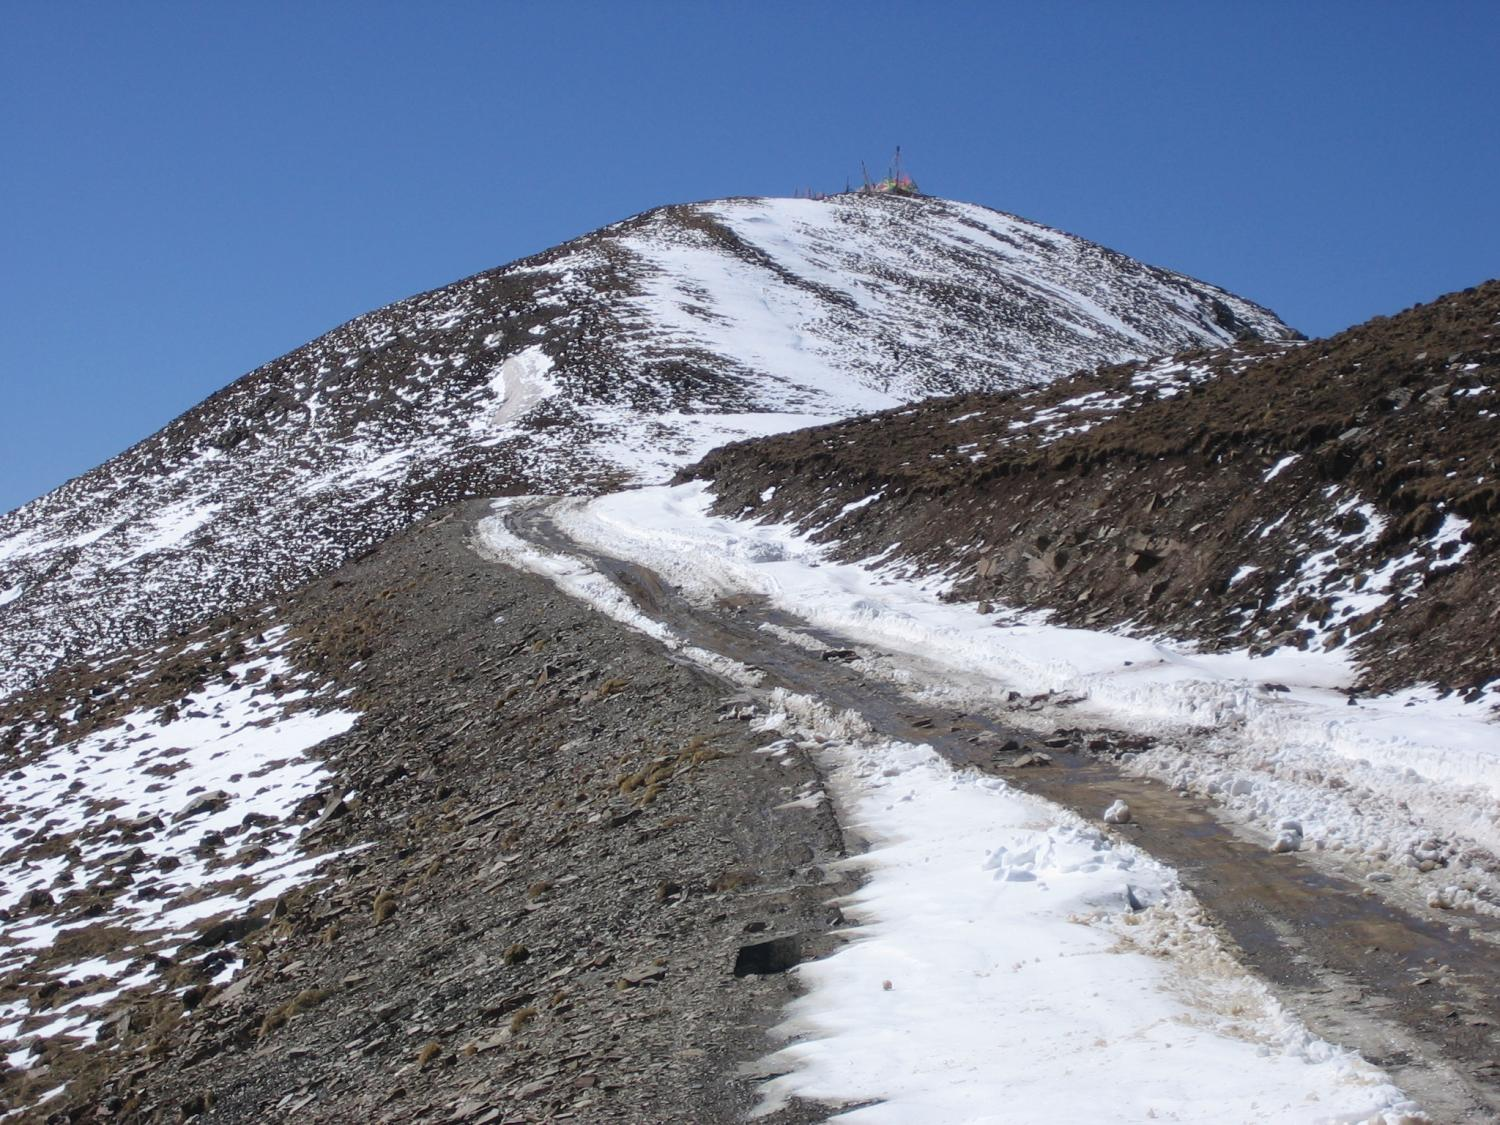 Mountain Pass on Road from Padma to Serta